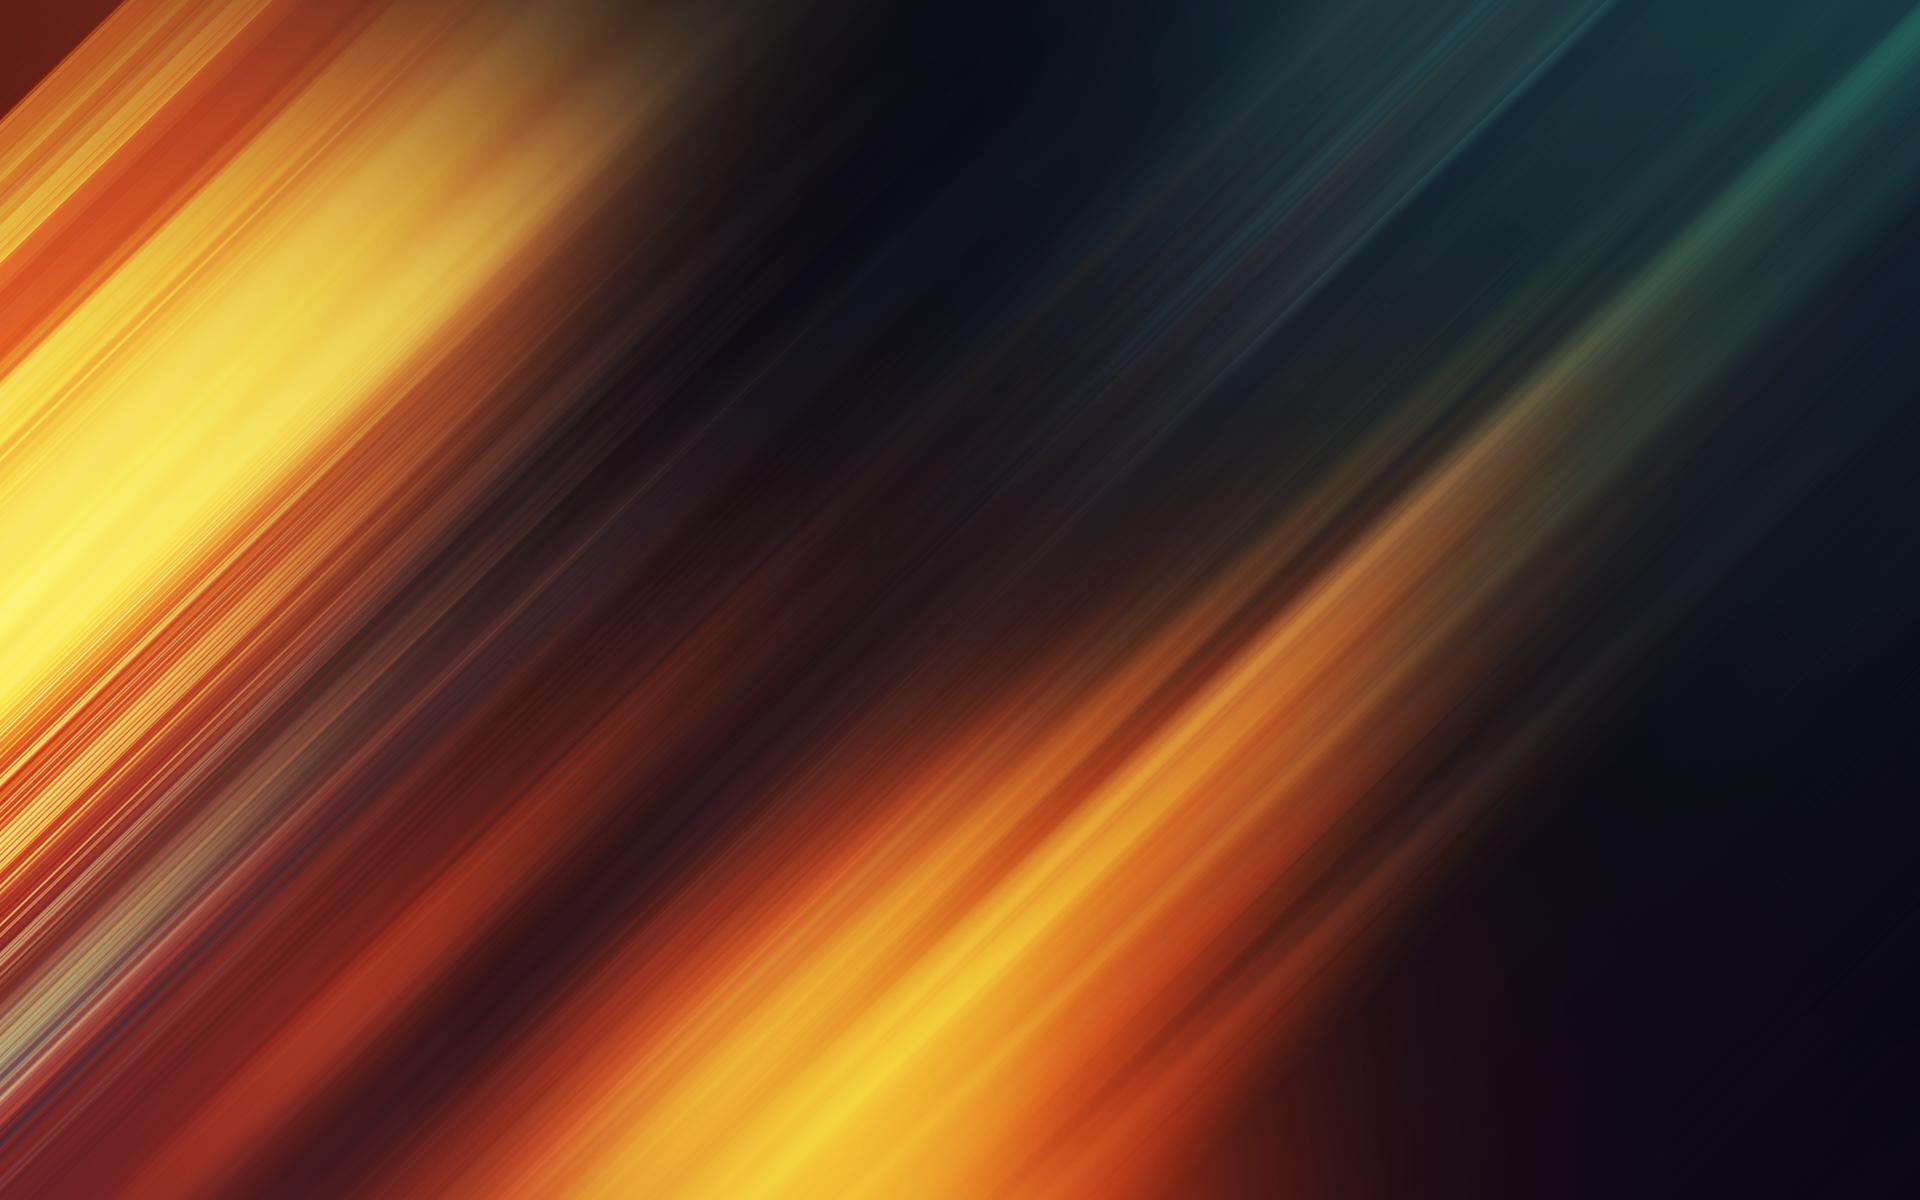 Motion Blur Wallpaper